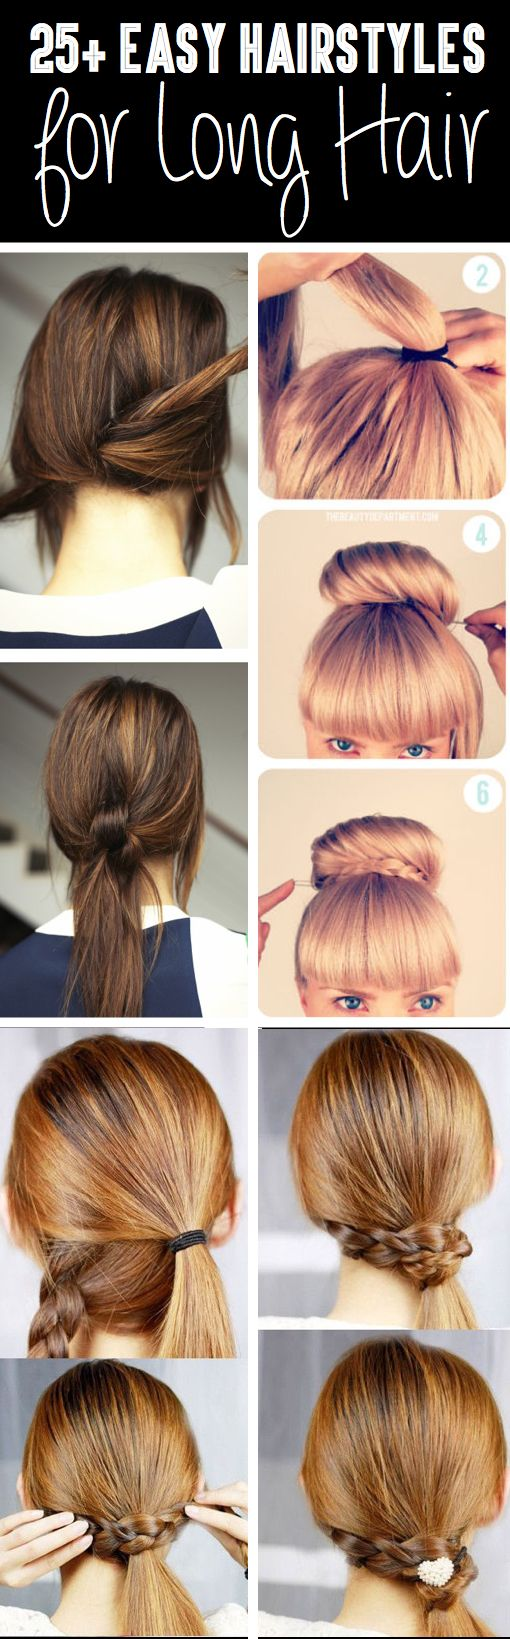 Peachy Easy Hairstyles Hairstyle For Long Hair And To Cute On Pinterest Short Hairstyles For Black Women Fulllsitofus